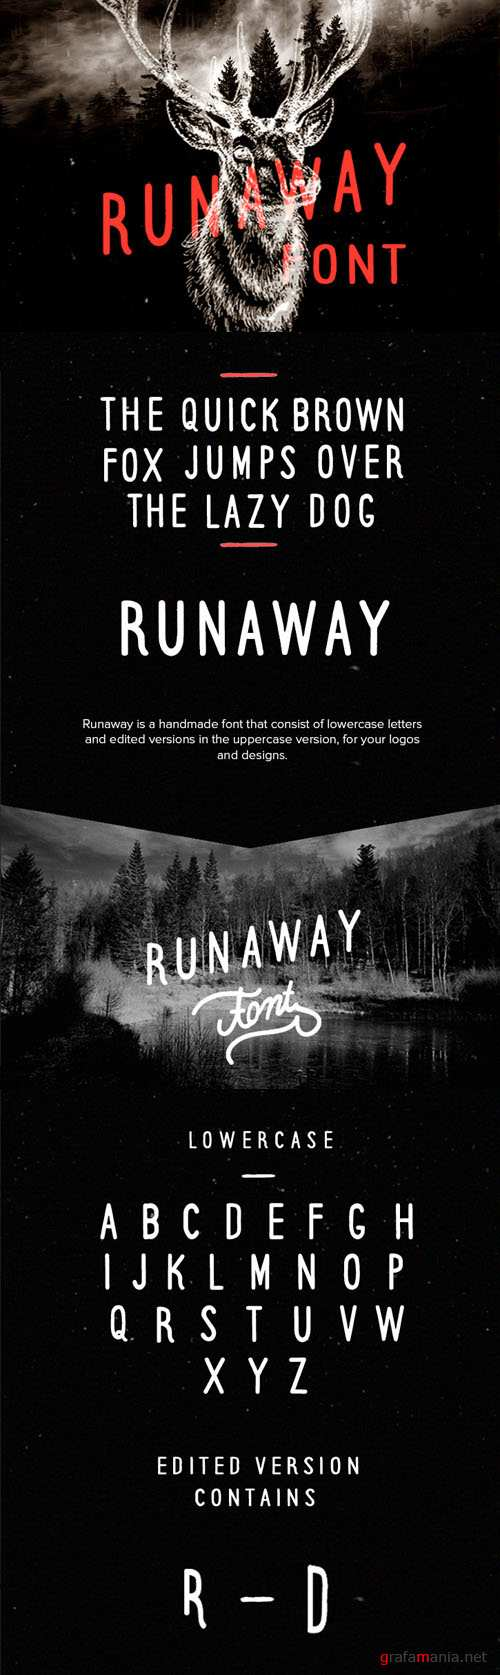 Runaway Retro/Vintage Hand Drawn Custom Font